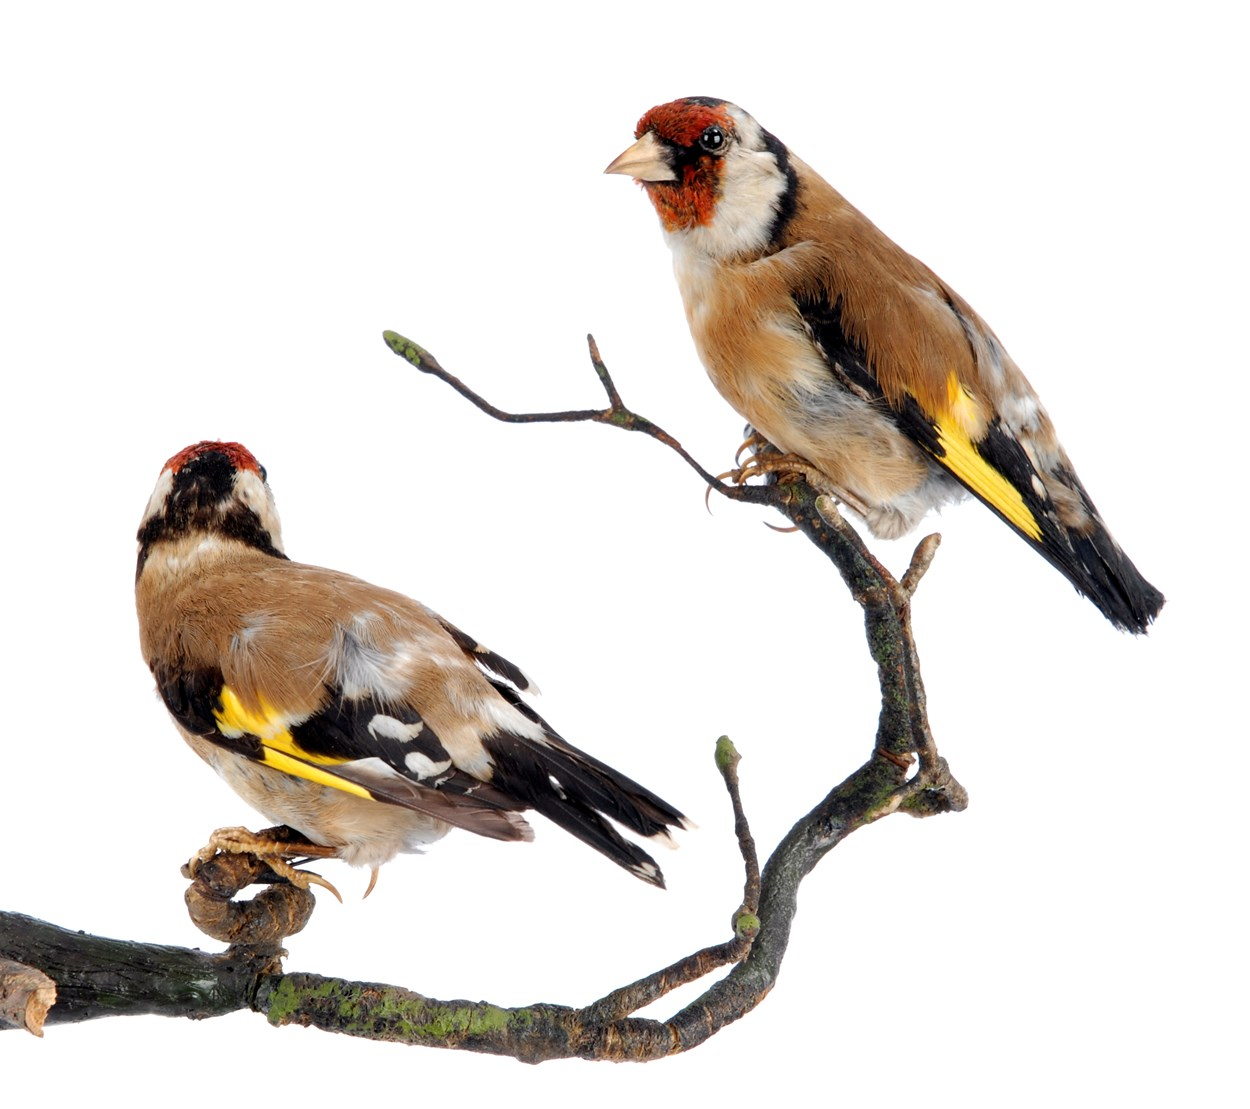 Birdwatching project: A goldfinch from the Leeds Museums and Galleries collection which is being used to help home birdwatchers identify birds in their gardens.